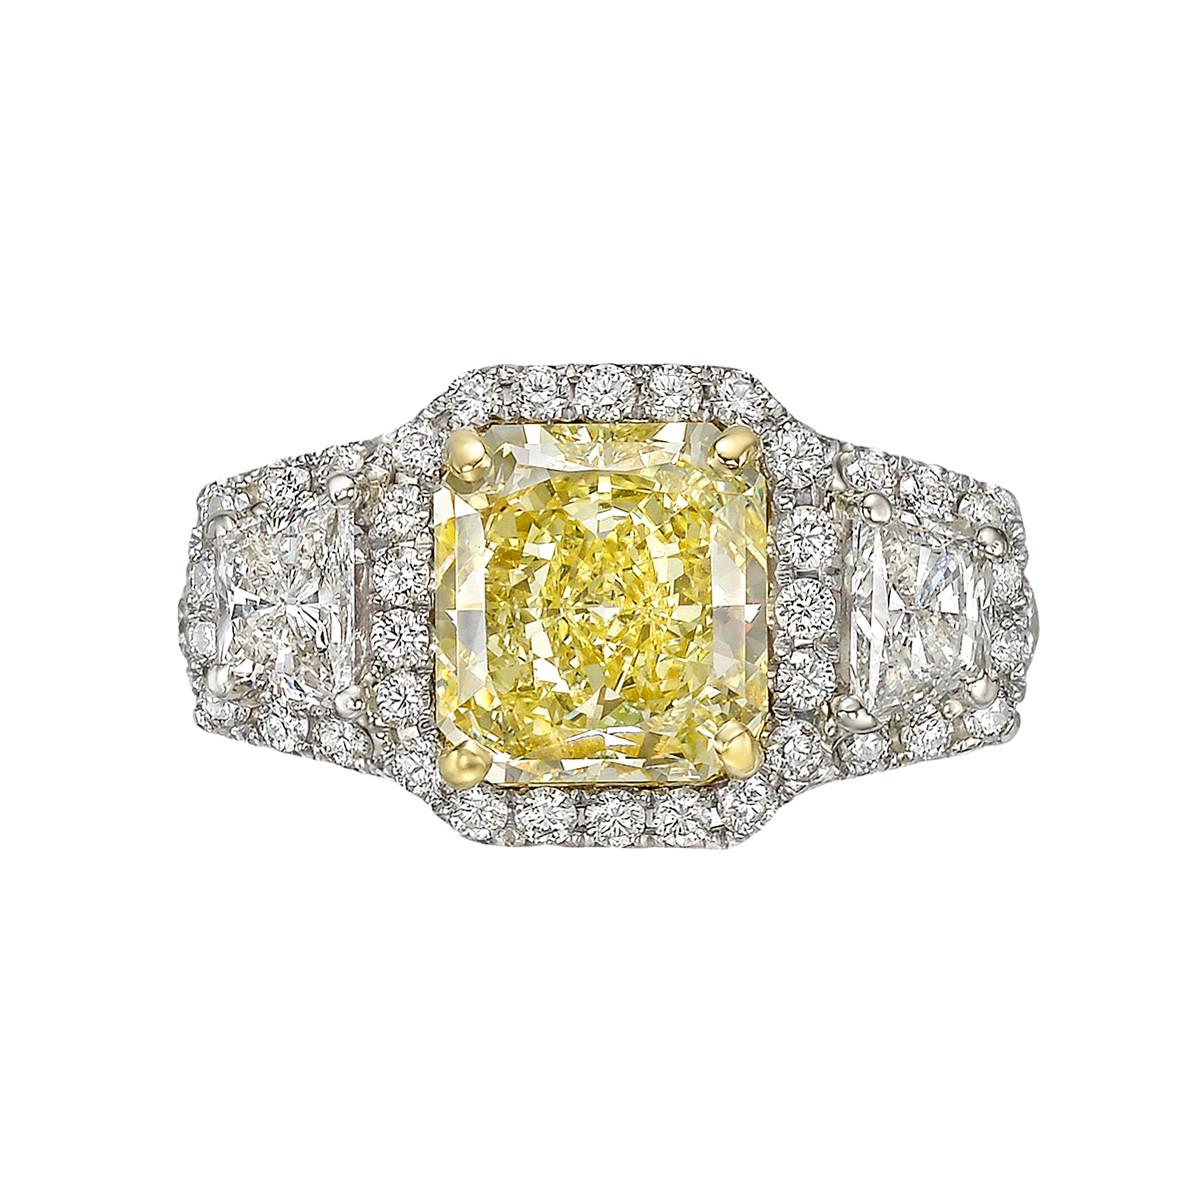 2.53ct Fancy Yellow Diamond Halo Ring